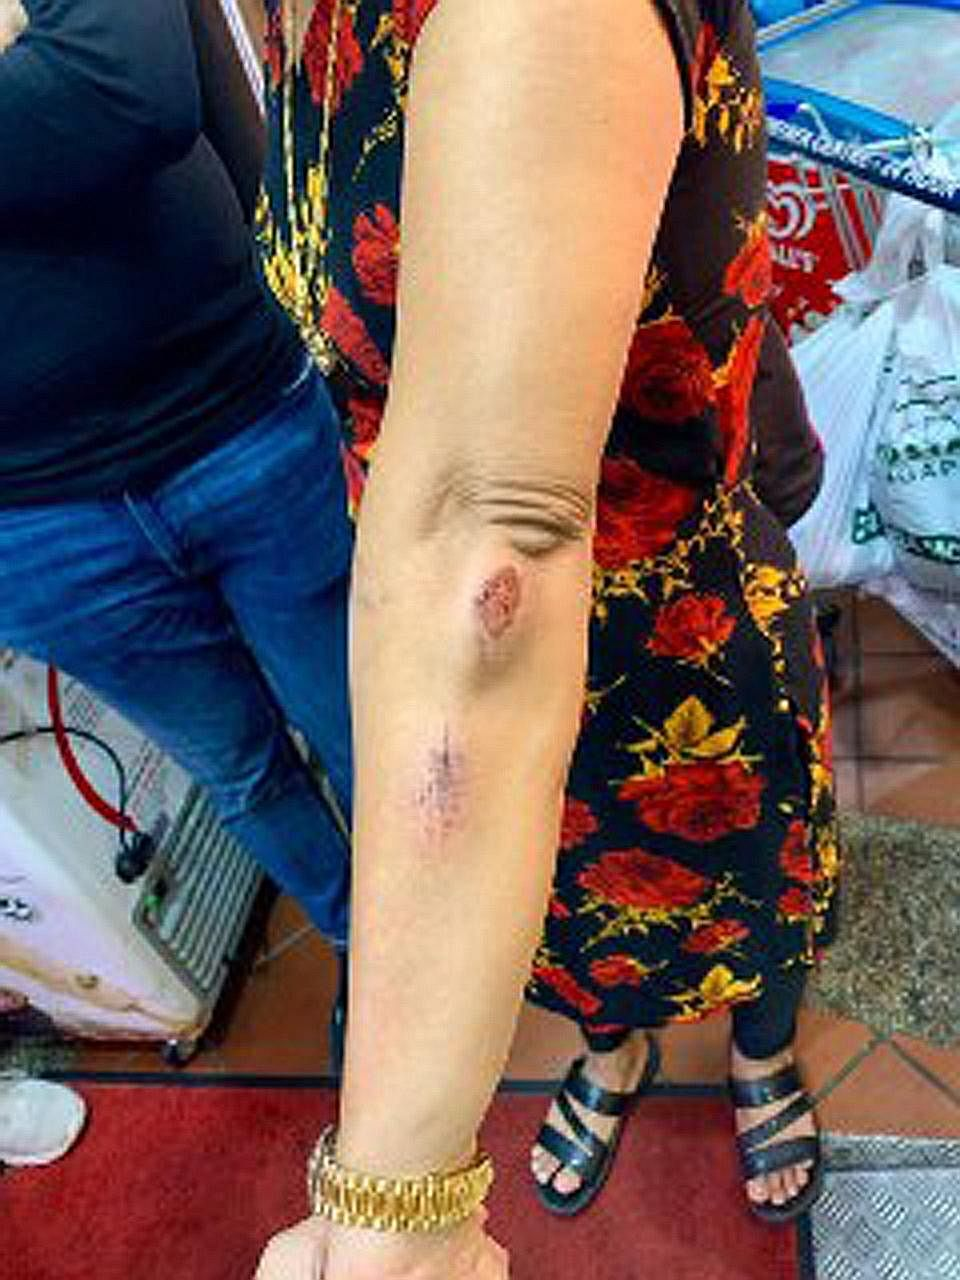 Madam Hindocha Nita Vishnubhai, 55, said she was brisk walking from Choa Chu Kang MRT station towards the stadium at about 8.30am last Friday when the alleged attack occurred near Northvale Condominium (top). She has scratches (above) on her arms and